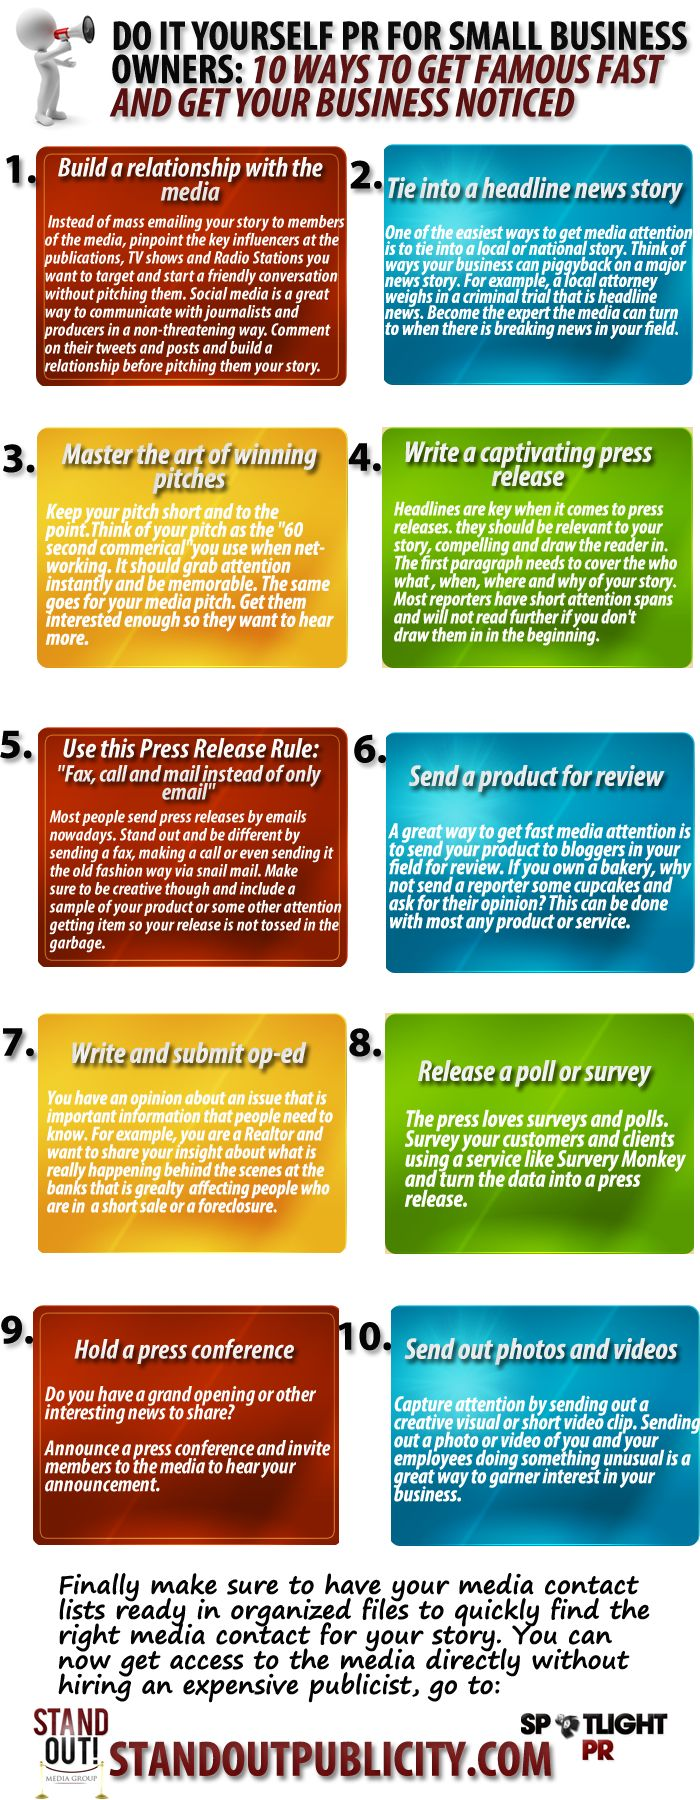 Do it Yourself PR for Small Business Owners: 10 ways to get famous fast and get your business noticed Infographic